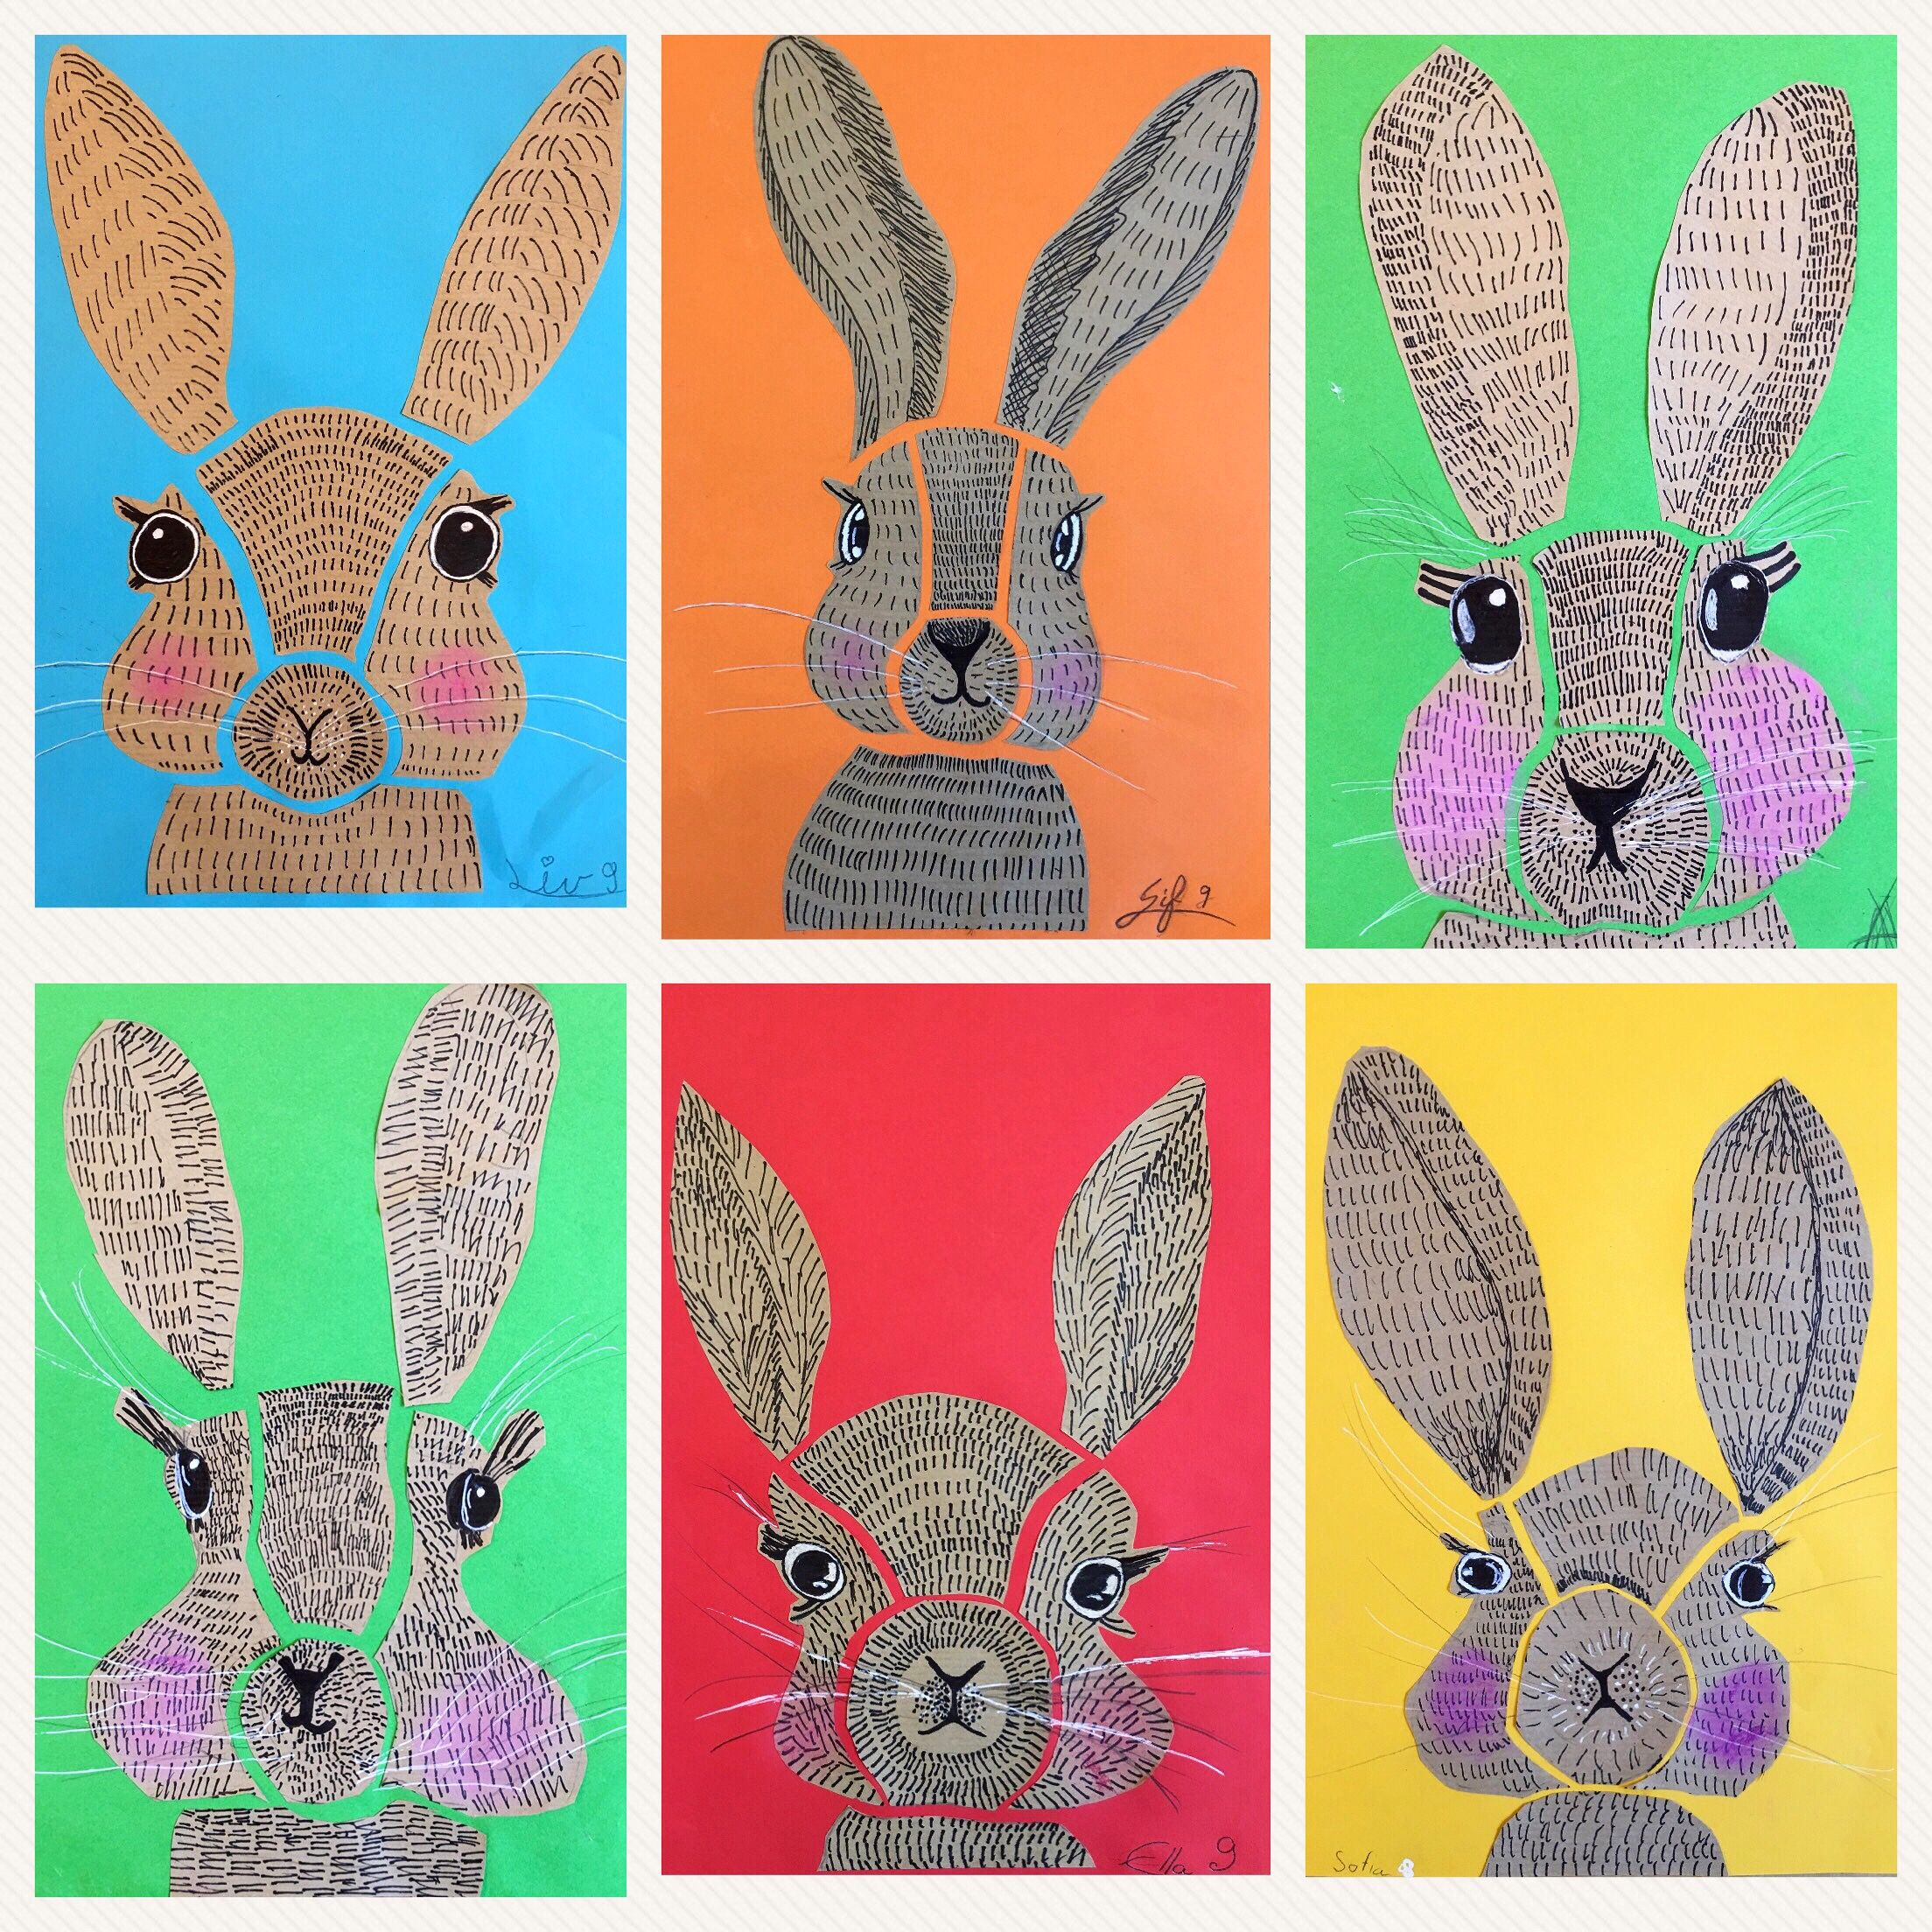 Rabbit Illustration Using Line Bunny Art Projects Elementary